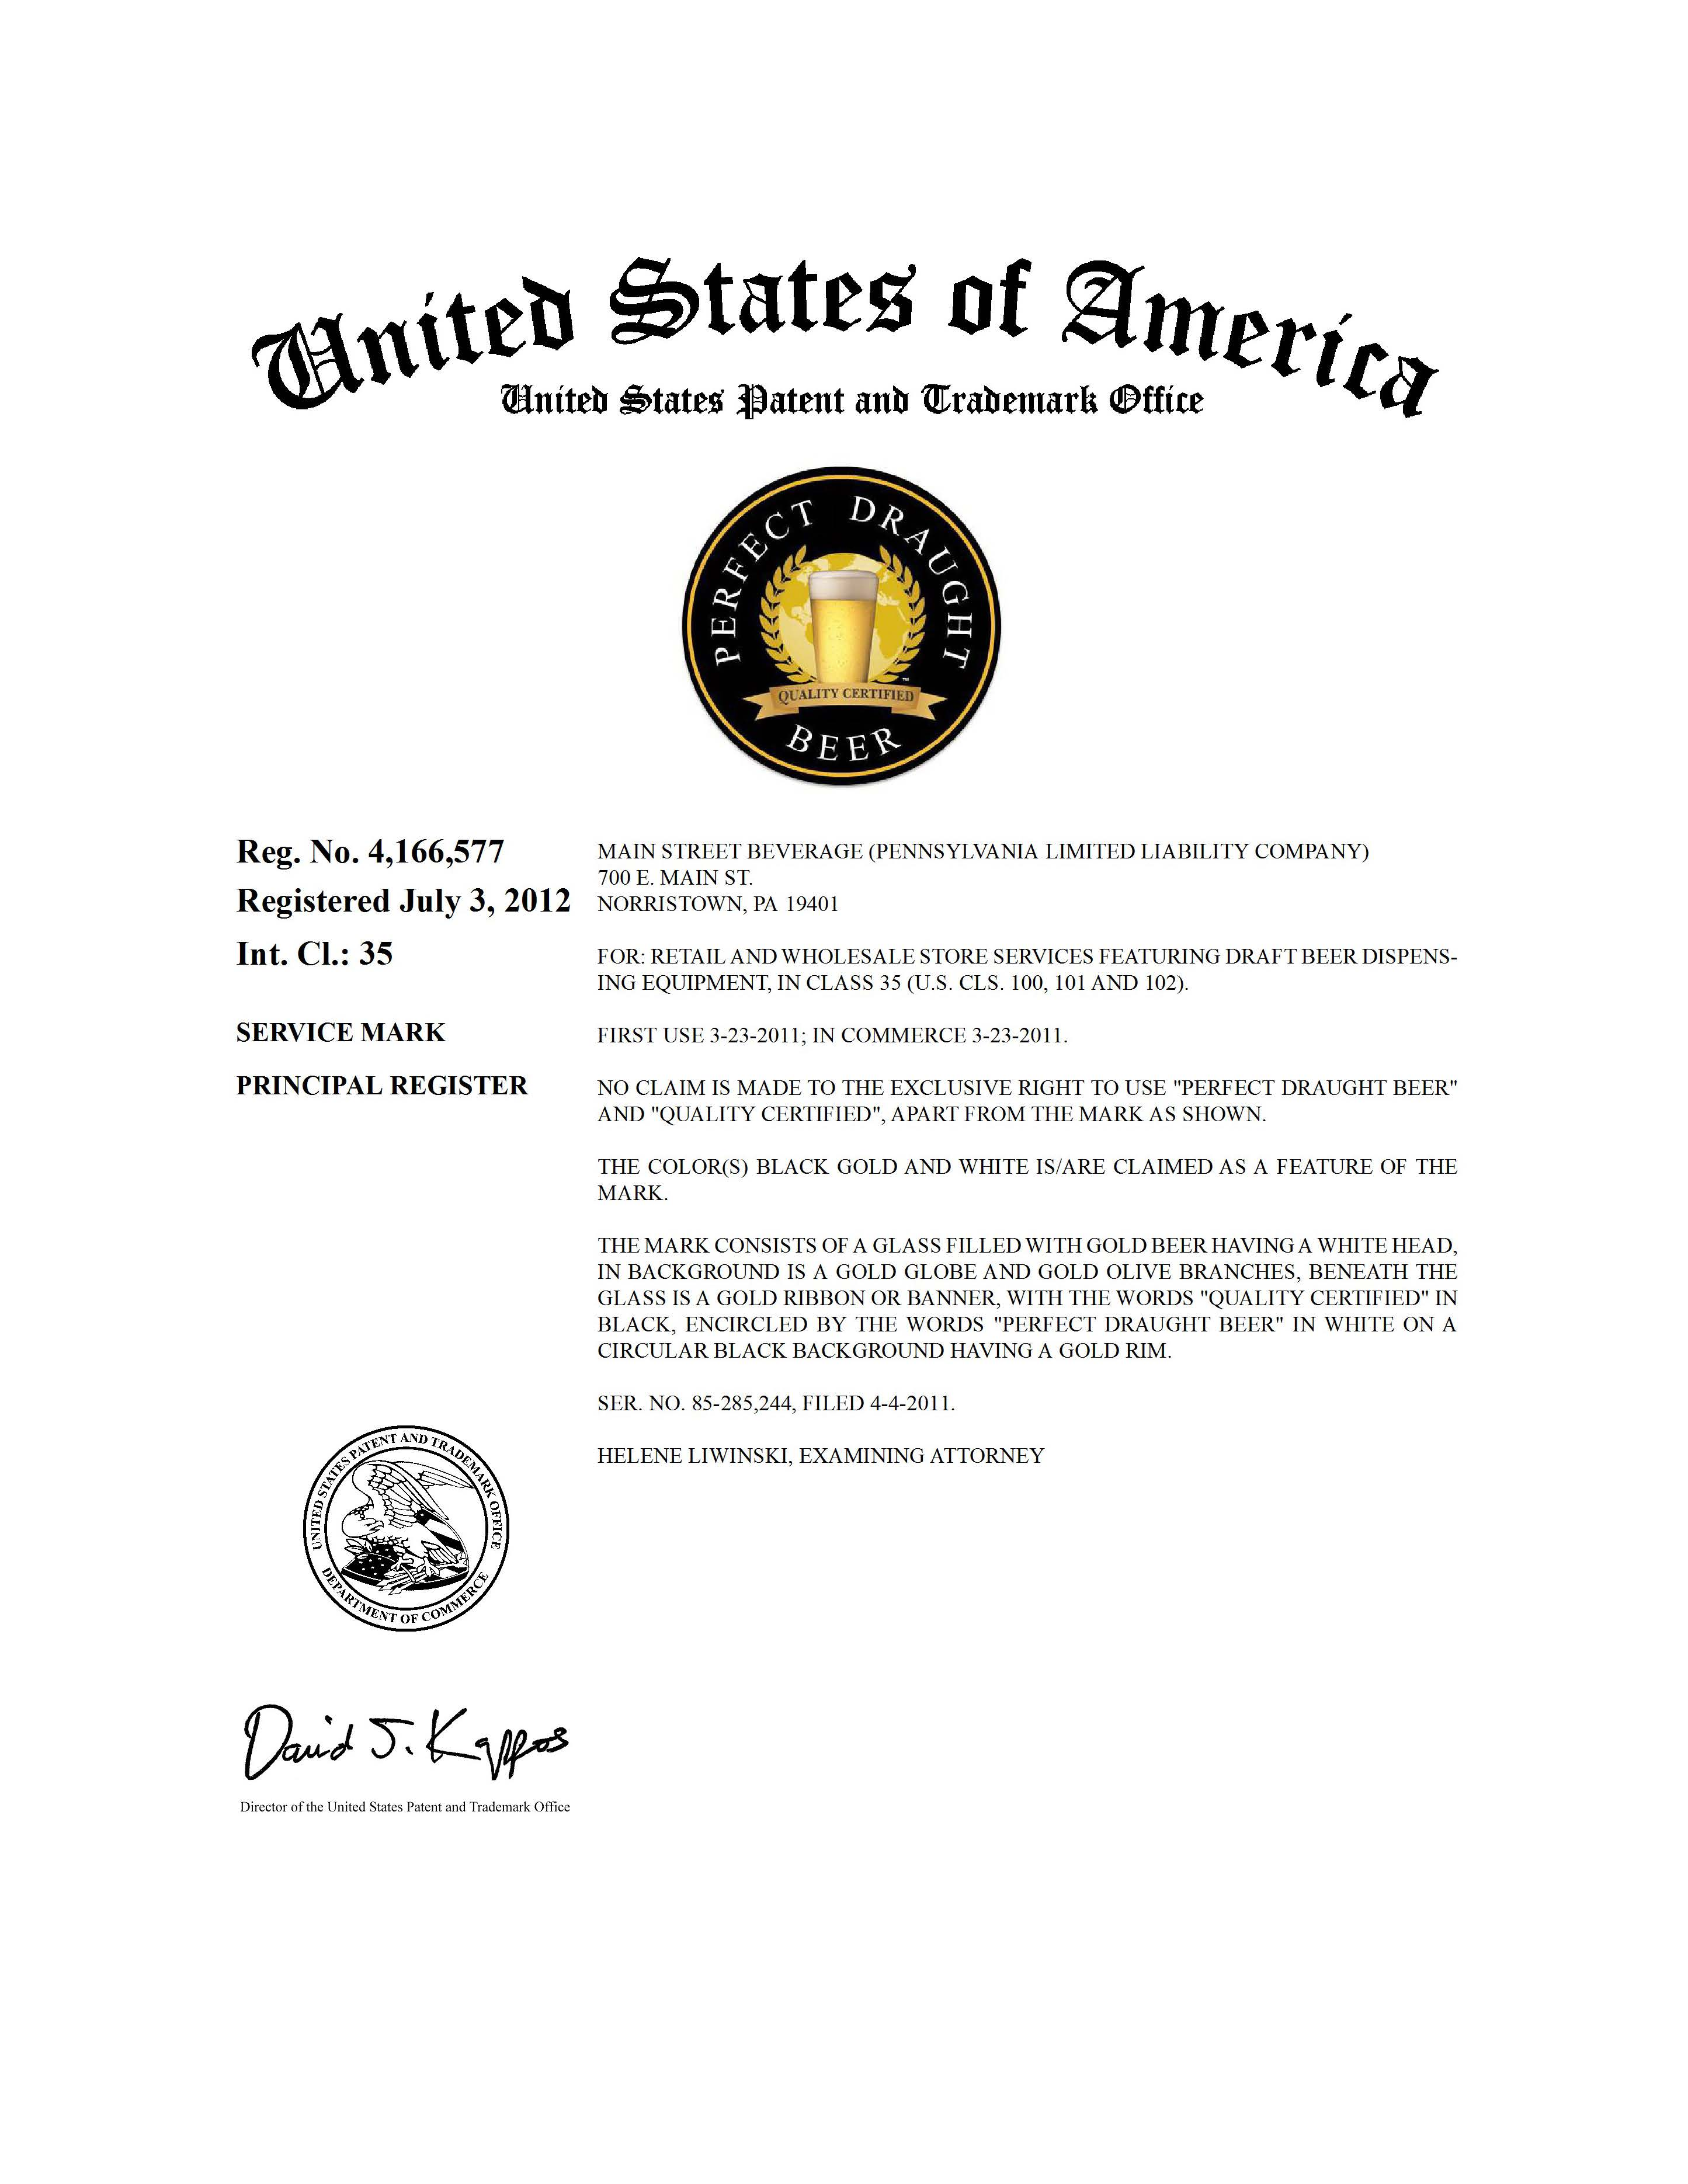 Trademark Application Granted For Perfect Draught Beer Quality